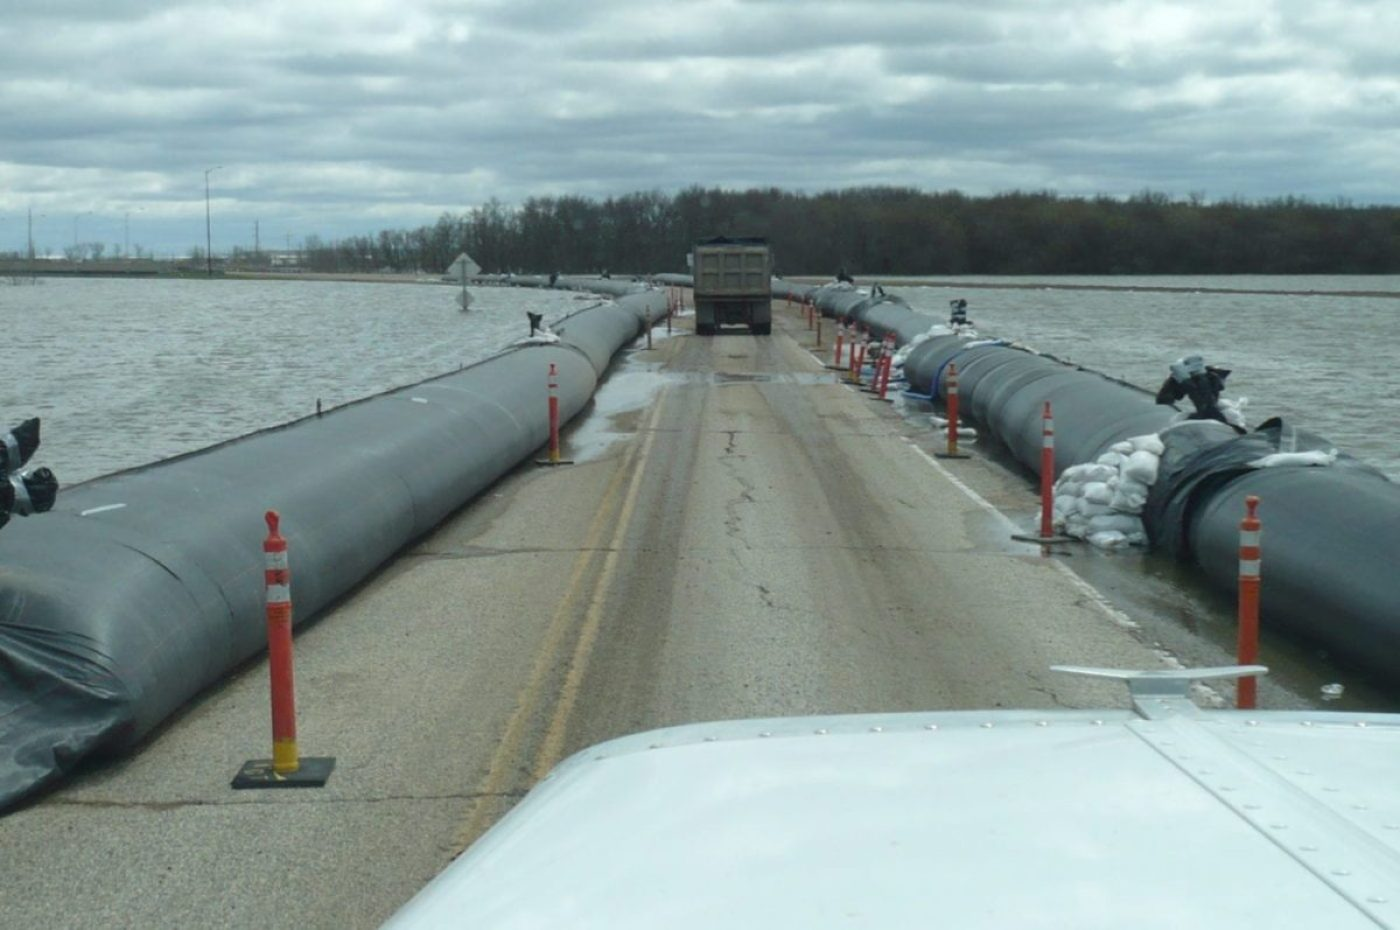 3000 feet of 3-foot tall AquaDams installed on either side of this highway in Brandon, Manitoba, Canada, in 2011. Kept the road open when it otherwise would have flooded. (AquaDam image)